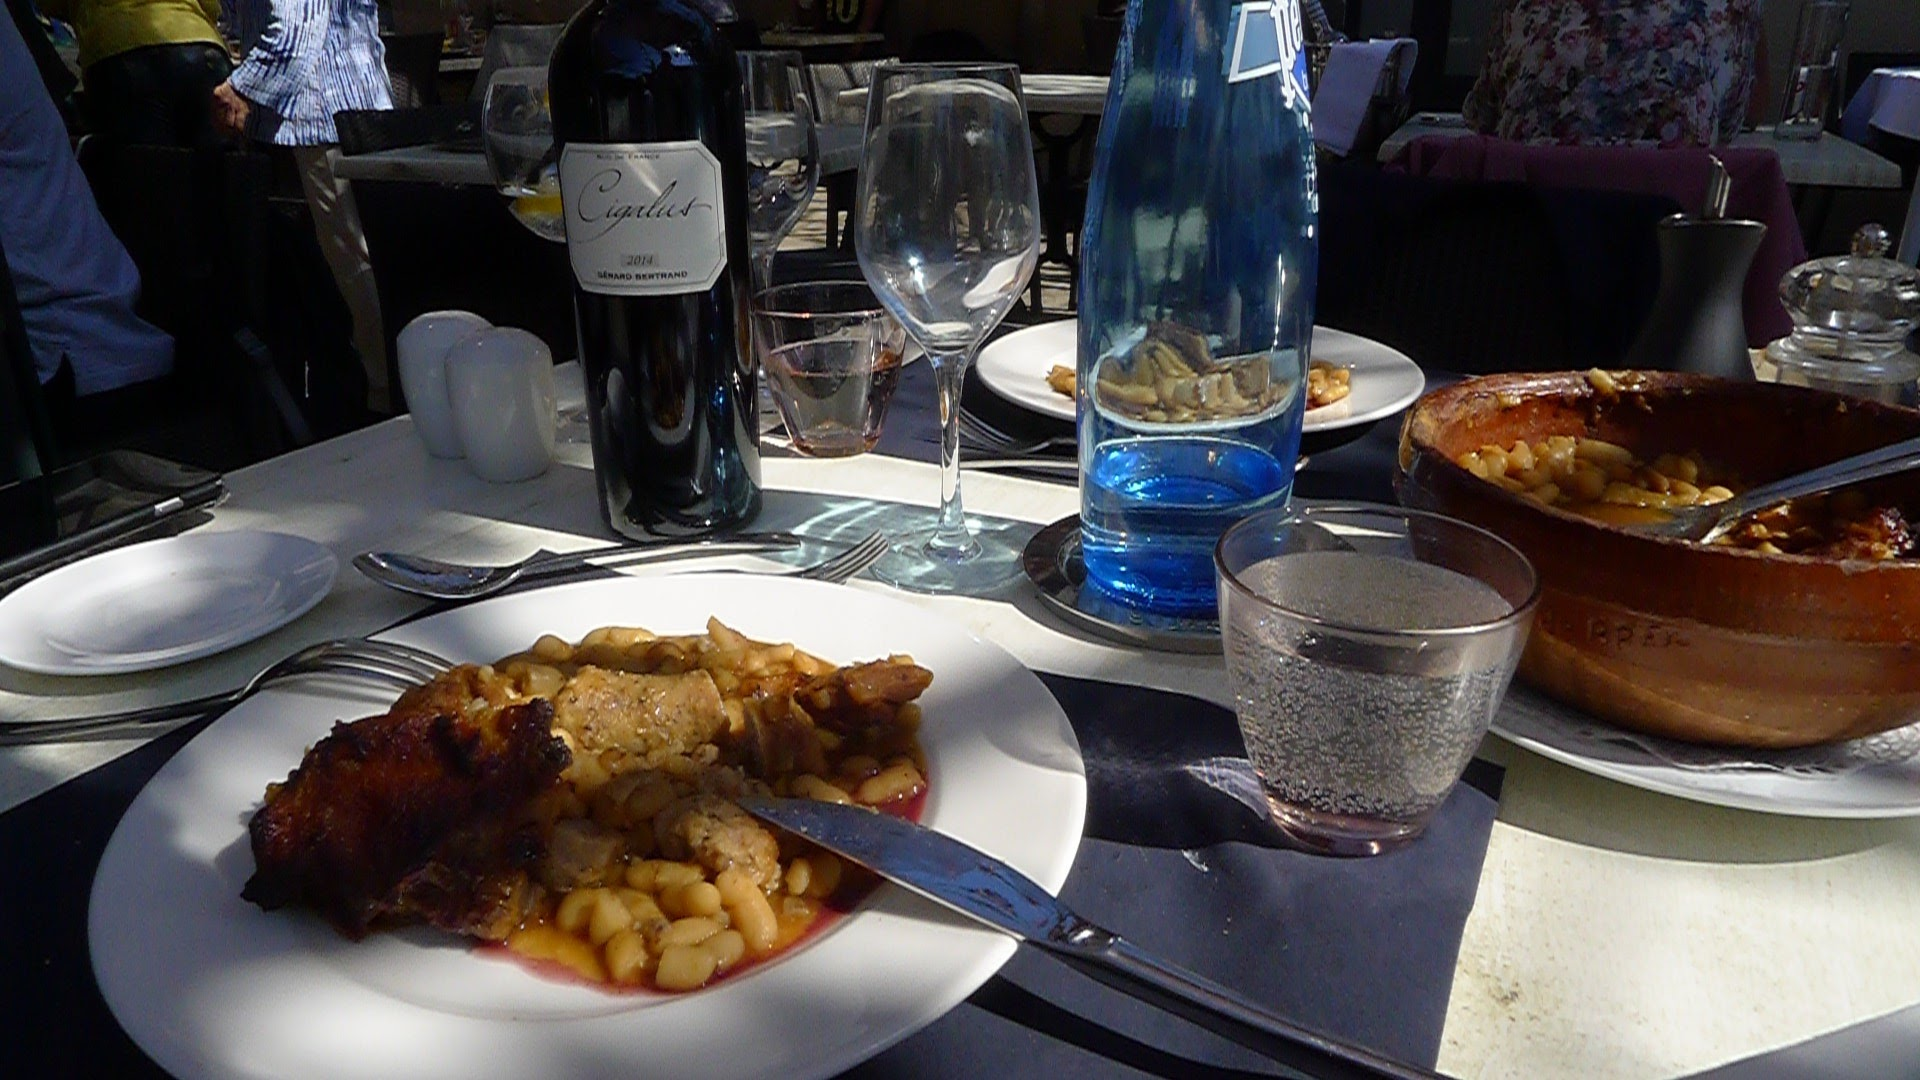 It wouldn't be Carcassonne without a Cassoulet, here served with Gerard Bertrand's Domaine de Cigalus Rouge. A perfect match.